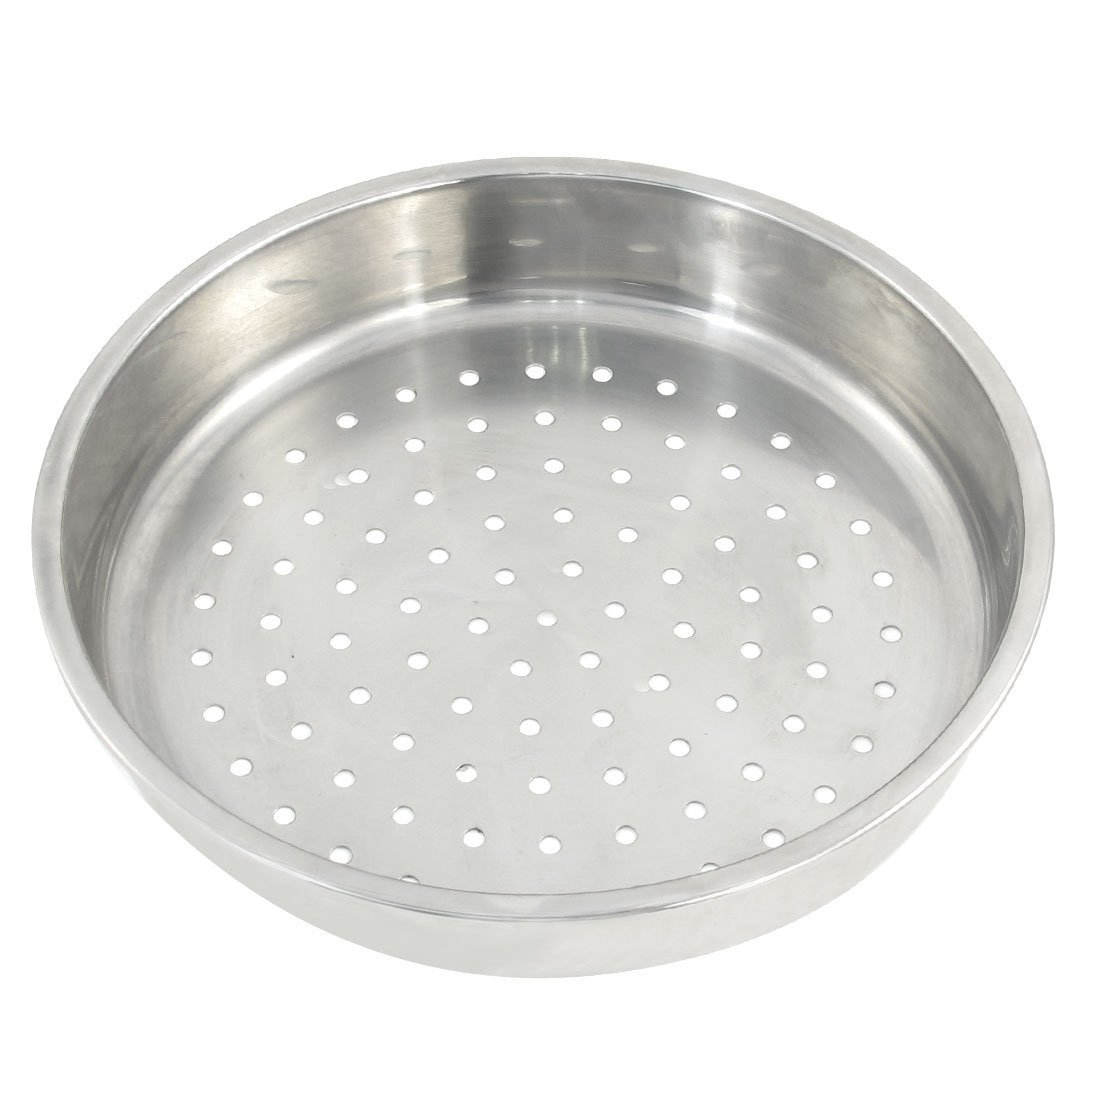 Round Stainless Steel Food Cooking Steamer Rack Cookware 23cm Dia